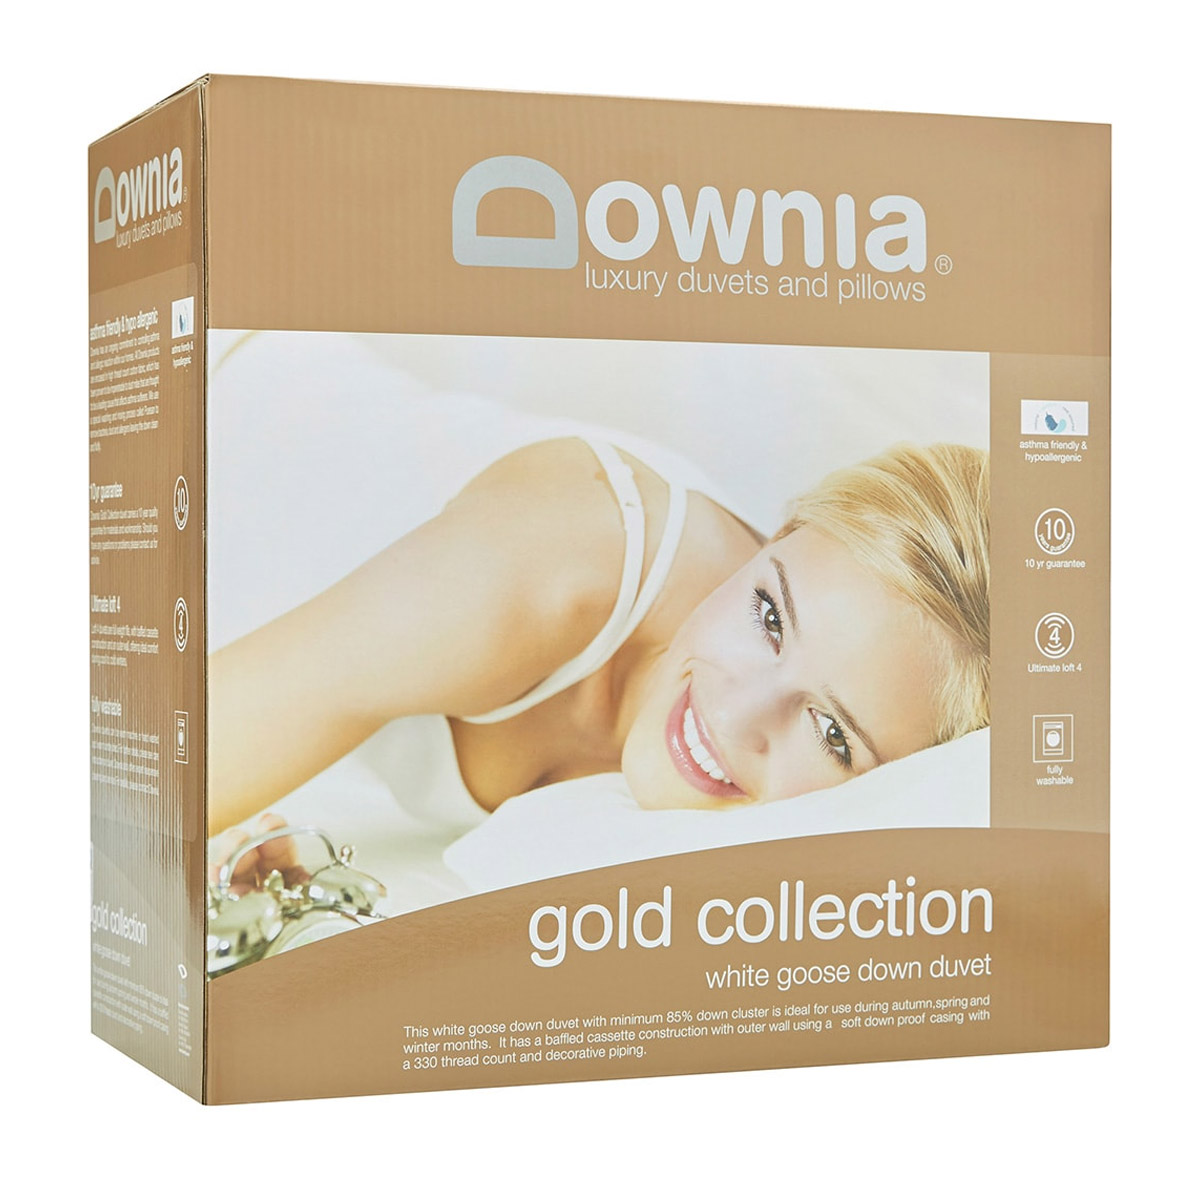 Downia Gold Collection White Goose Down Duvet